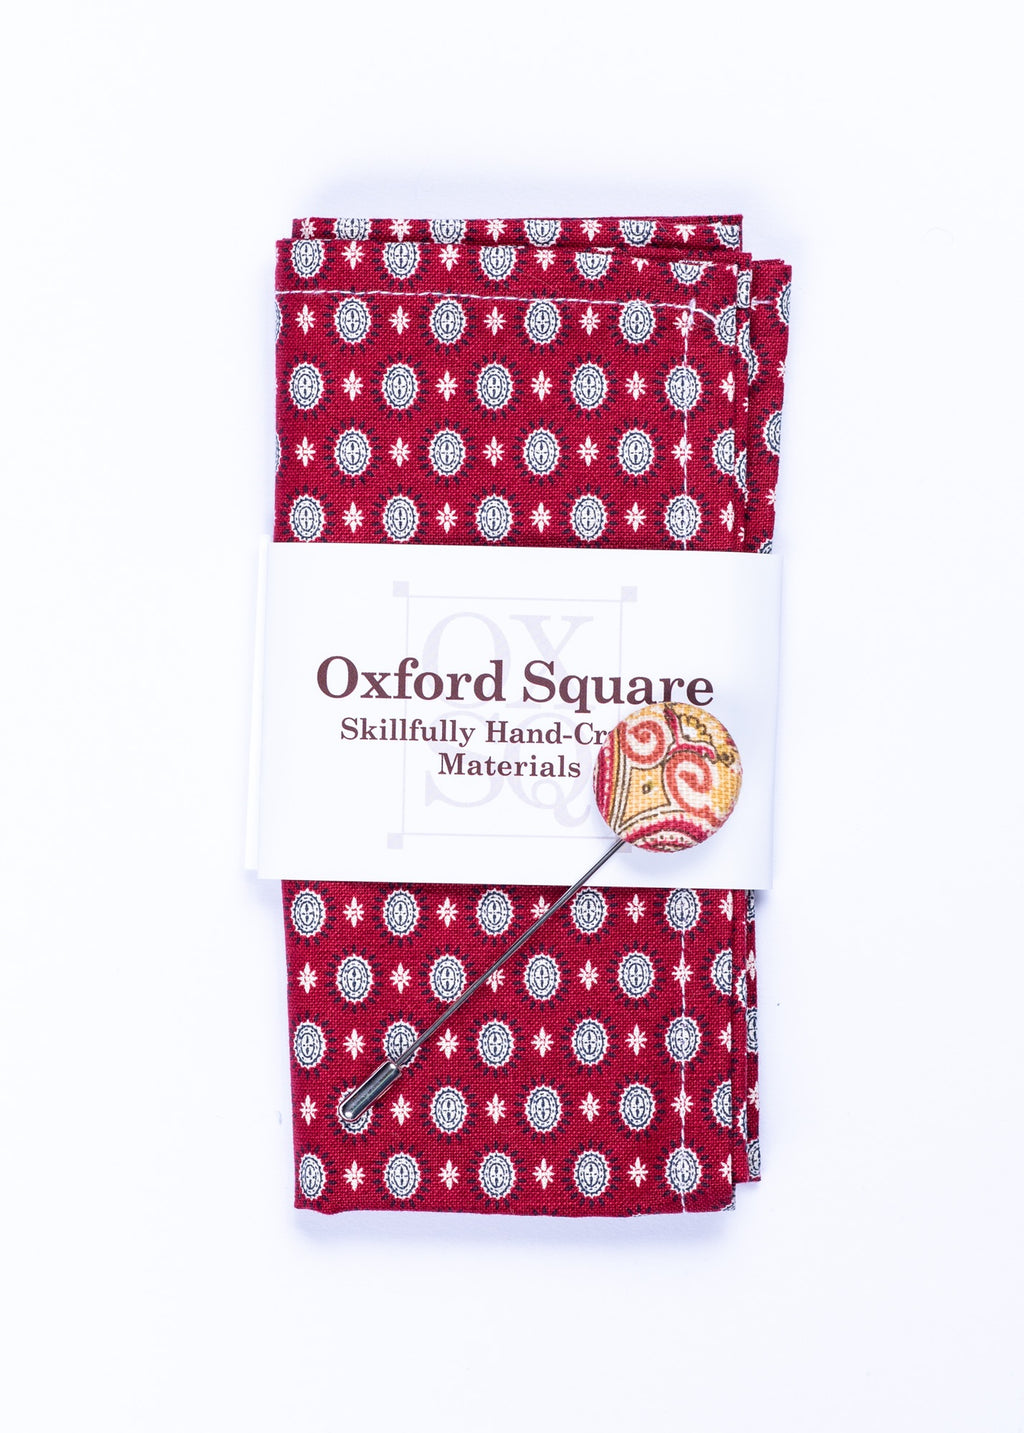 foulard pocket square and lapel pin pack - Oxford Square